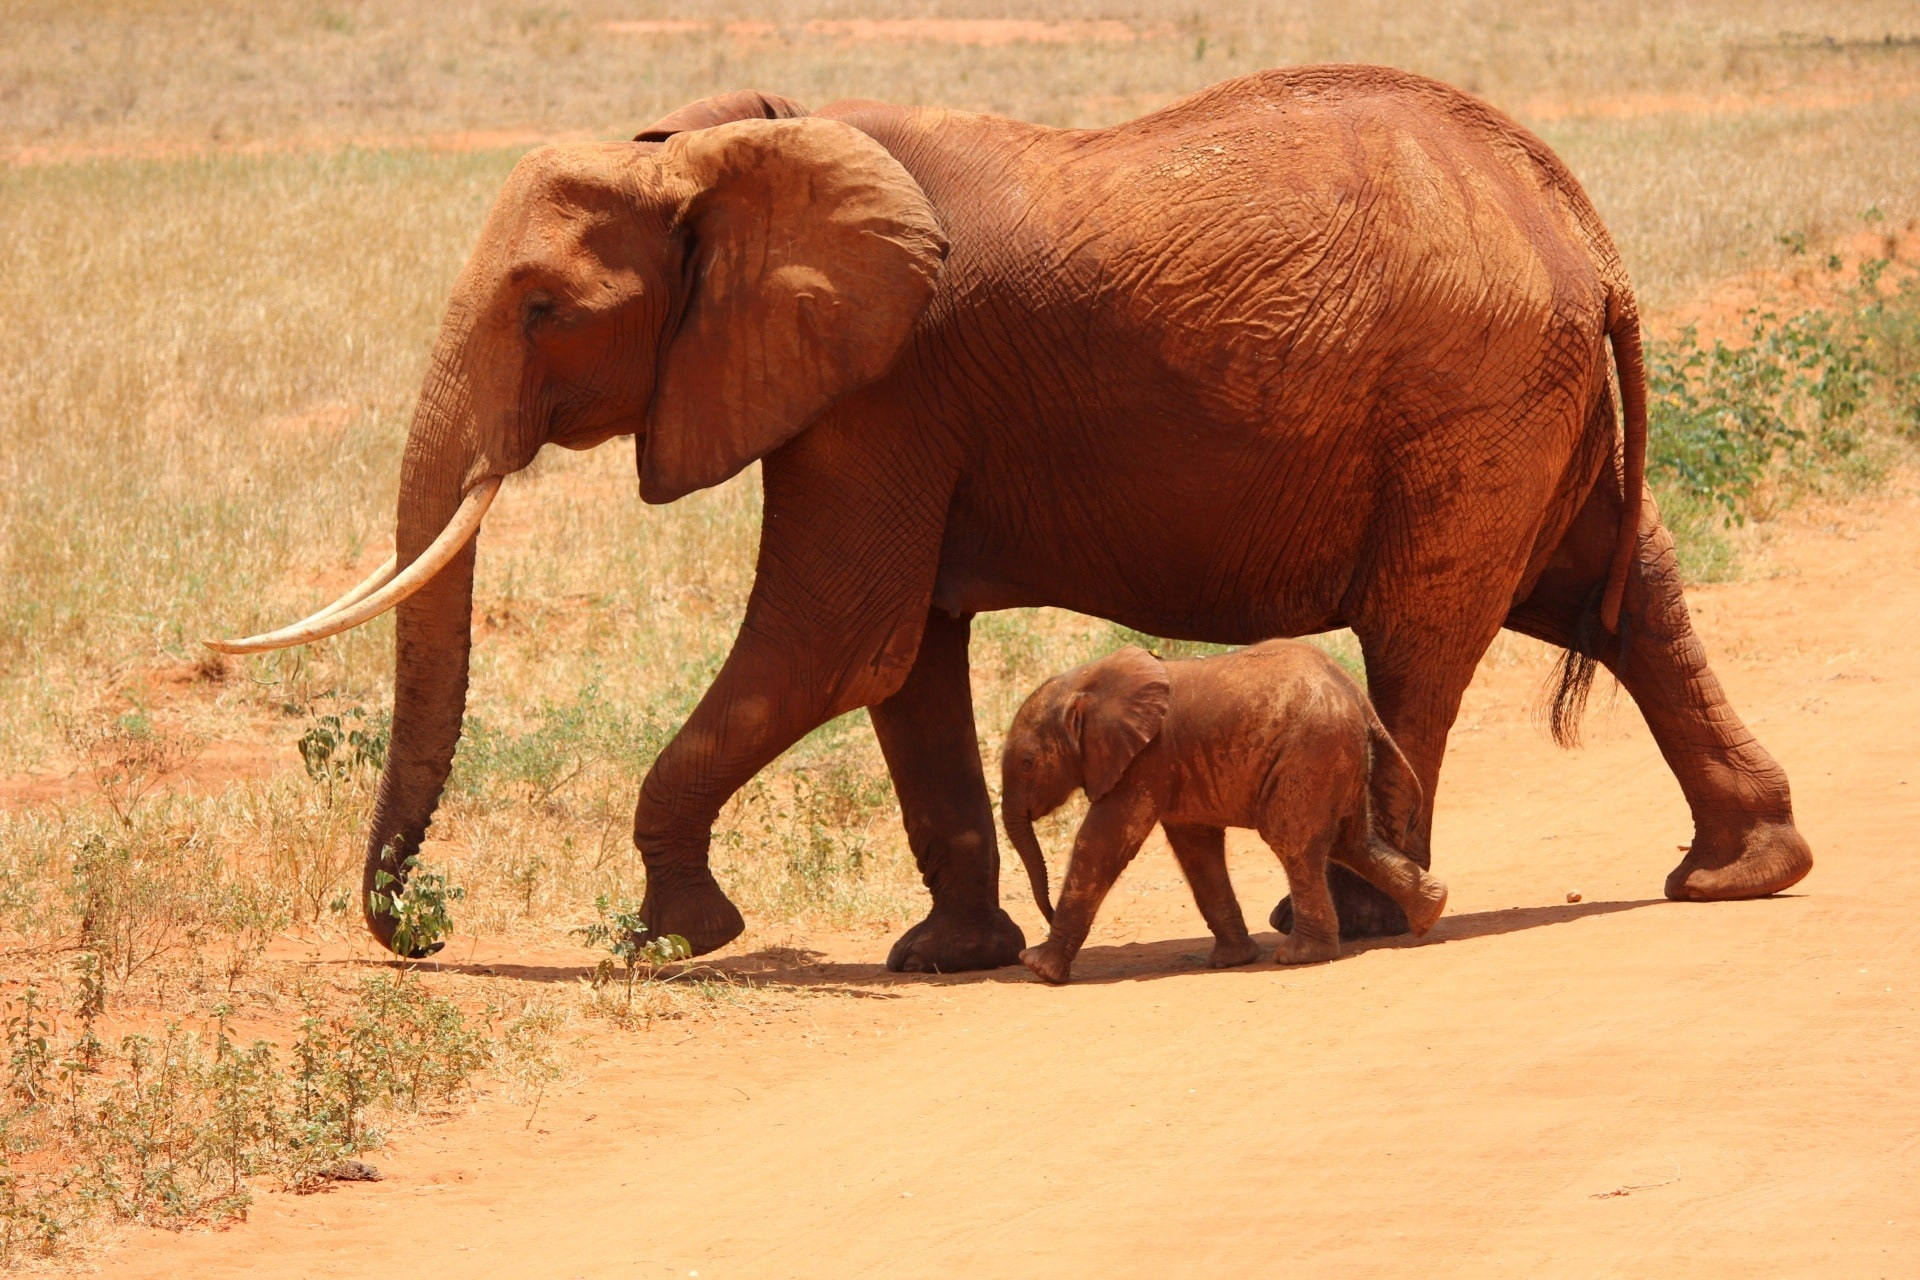 Baby elephant with its mother